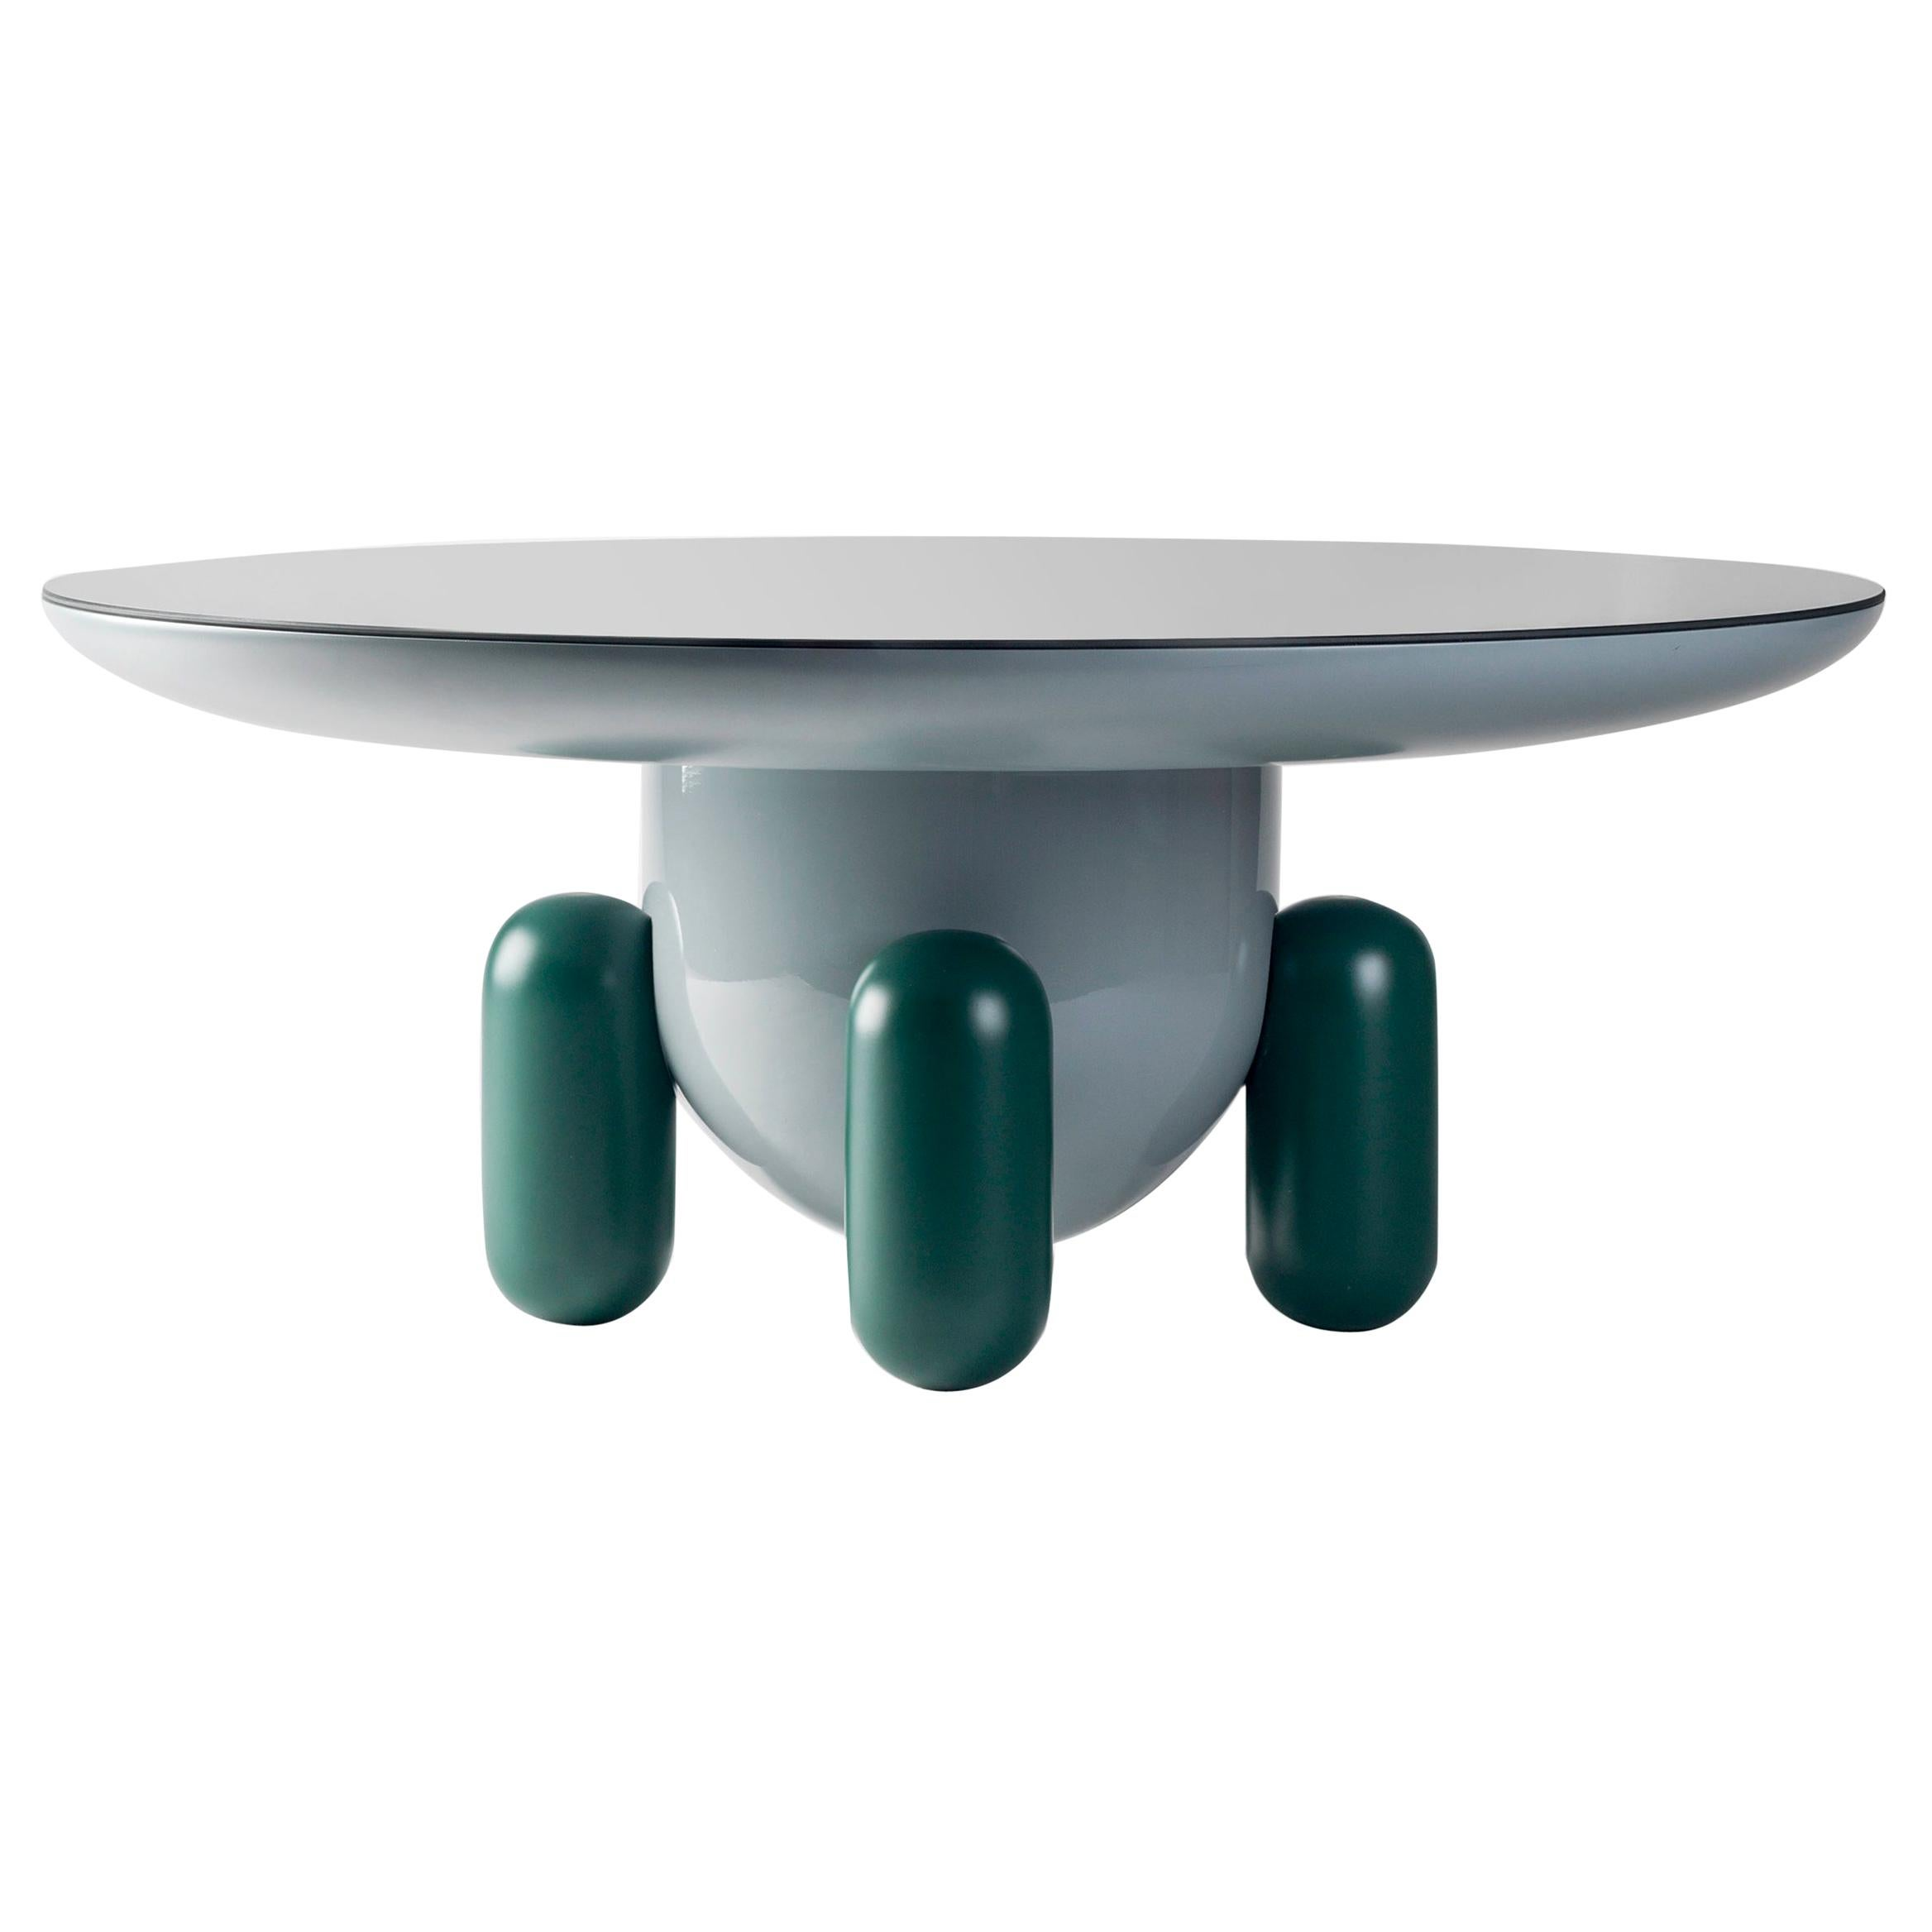 Jaime Hayon Multi-Color Green Explorer #03 Table by BD Barcelona